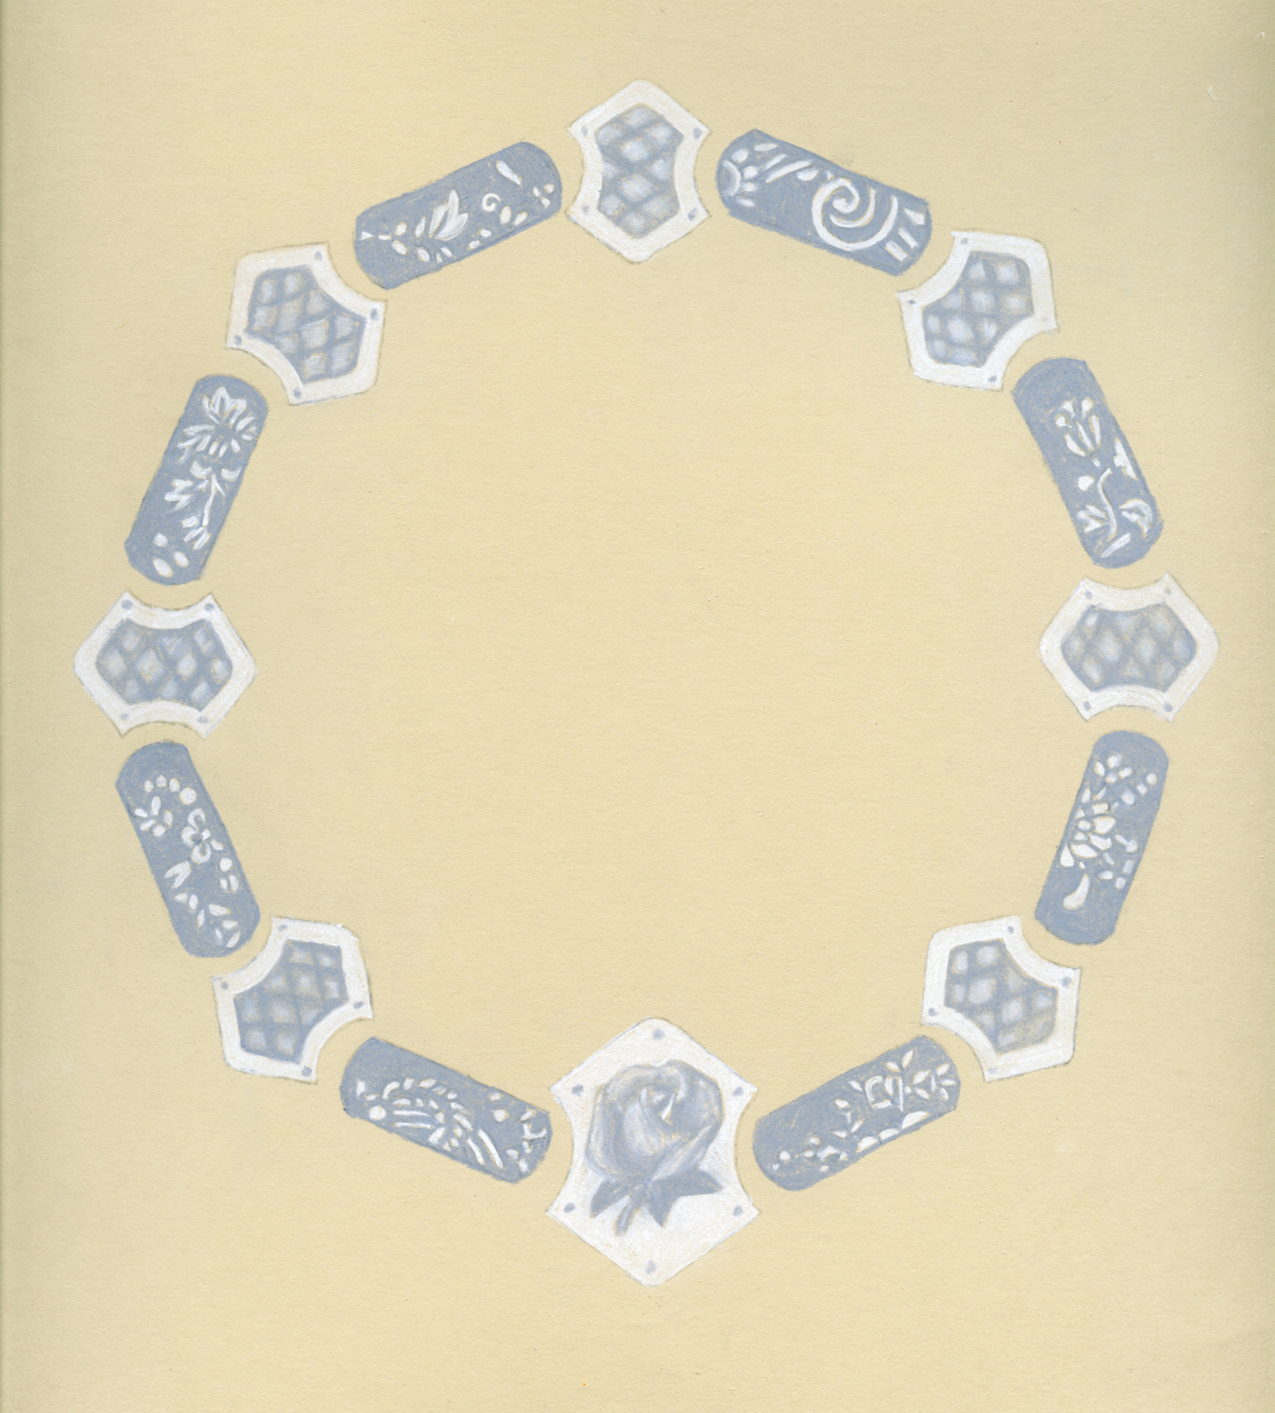 Handkerchief Necklace Proposal Rendering